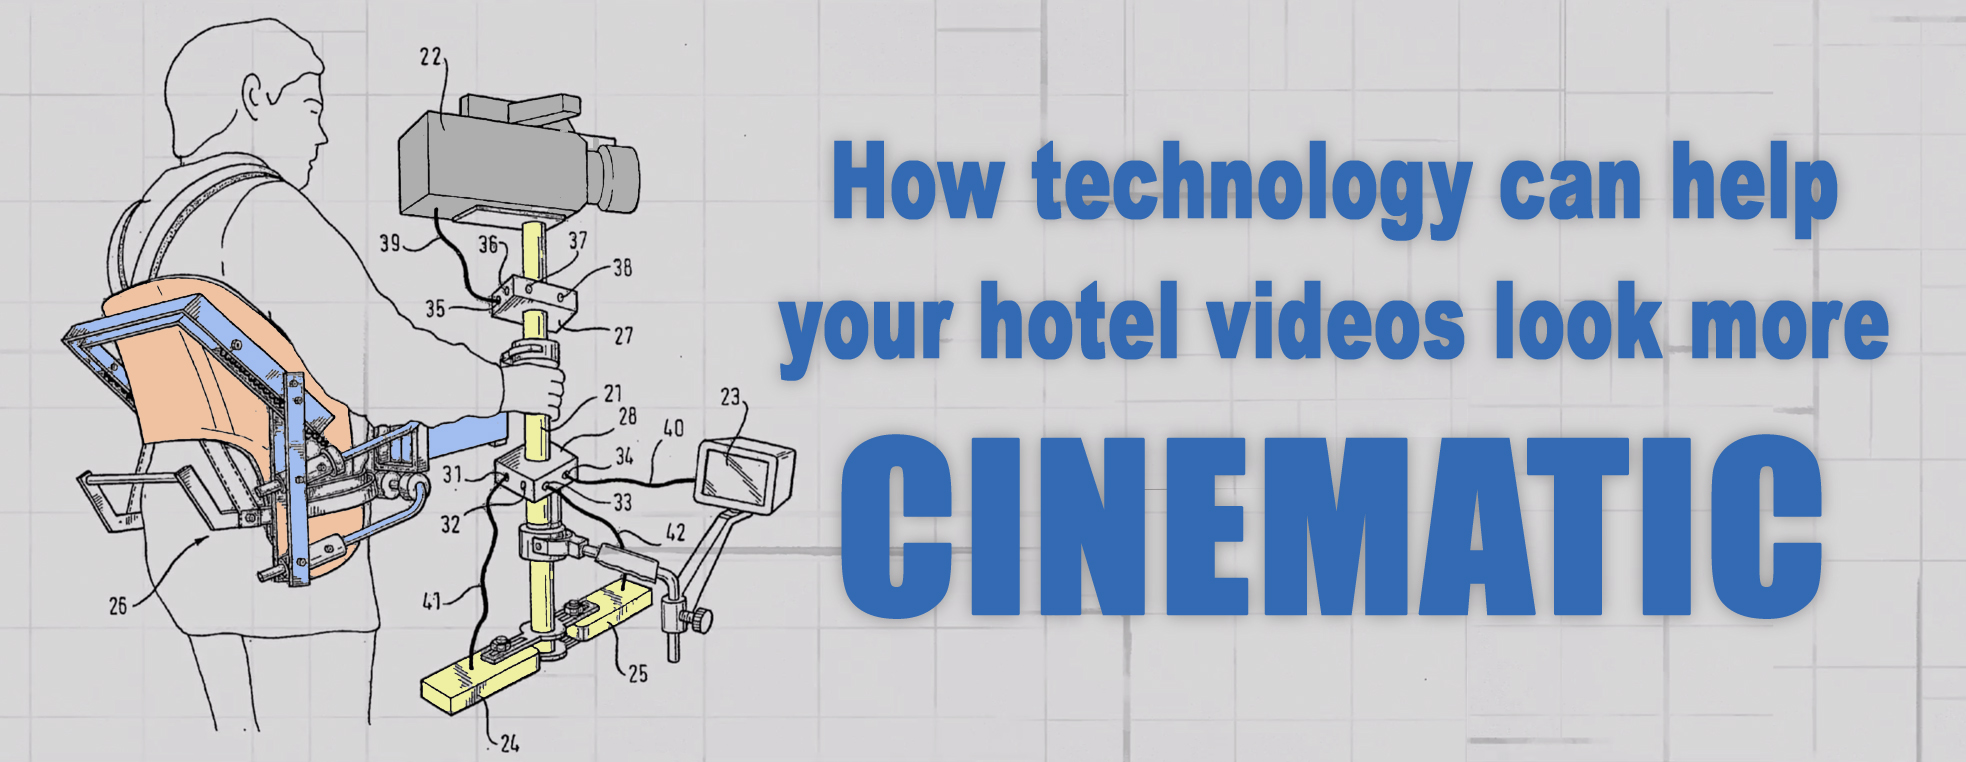 How technology can help your hotel videos look more cinematic